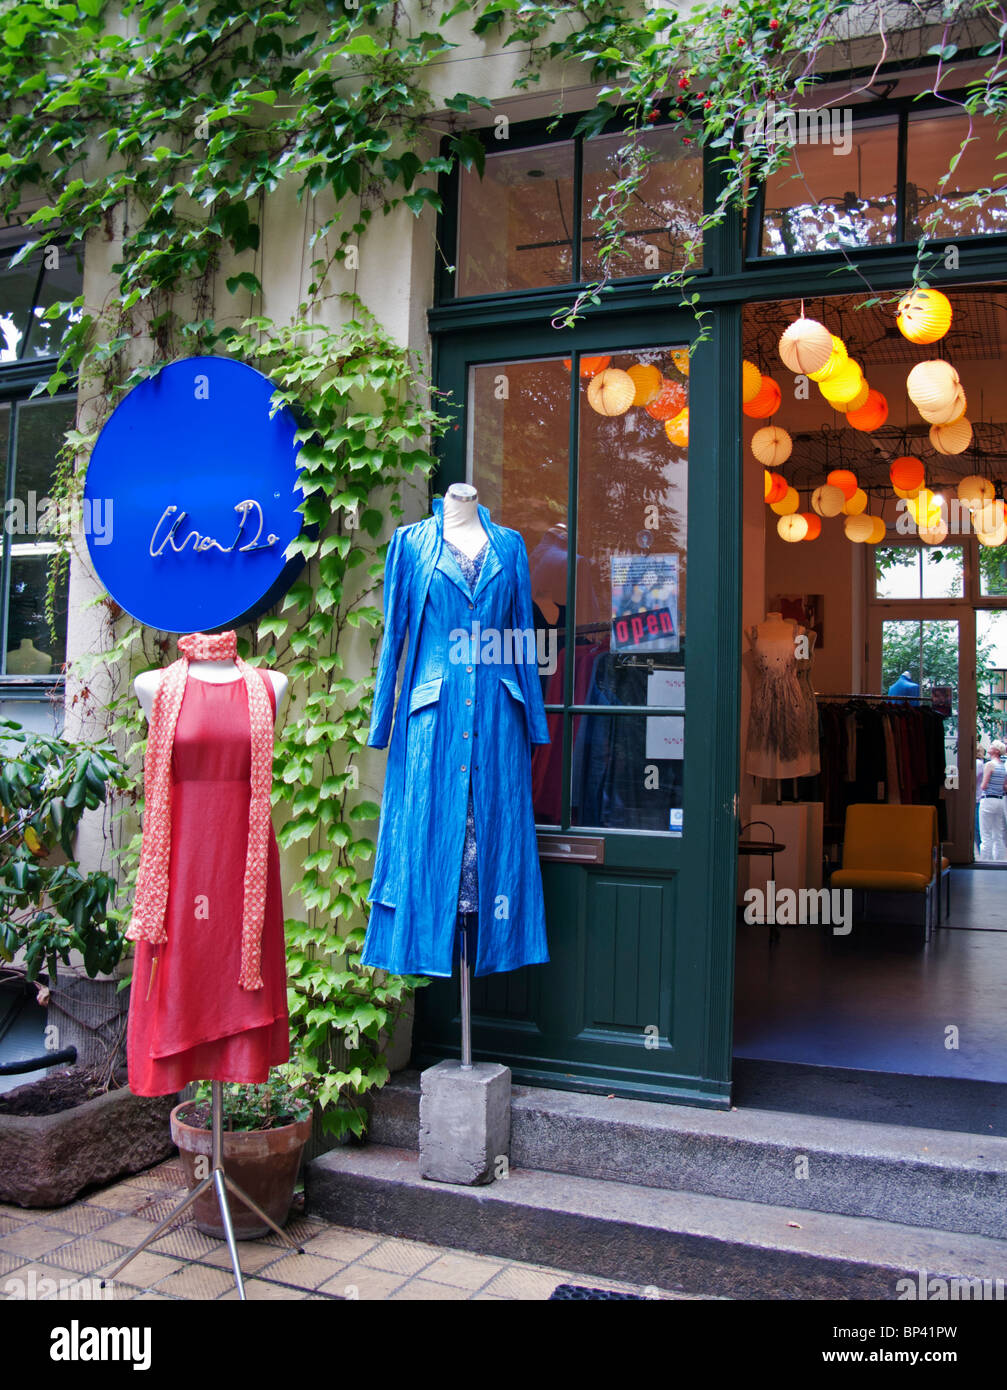 Fashion clothing boutique lisa D in courtyard at Hackesche Hofe in Scheunenviertel  Mitte Berlin Germany - Stock Image